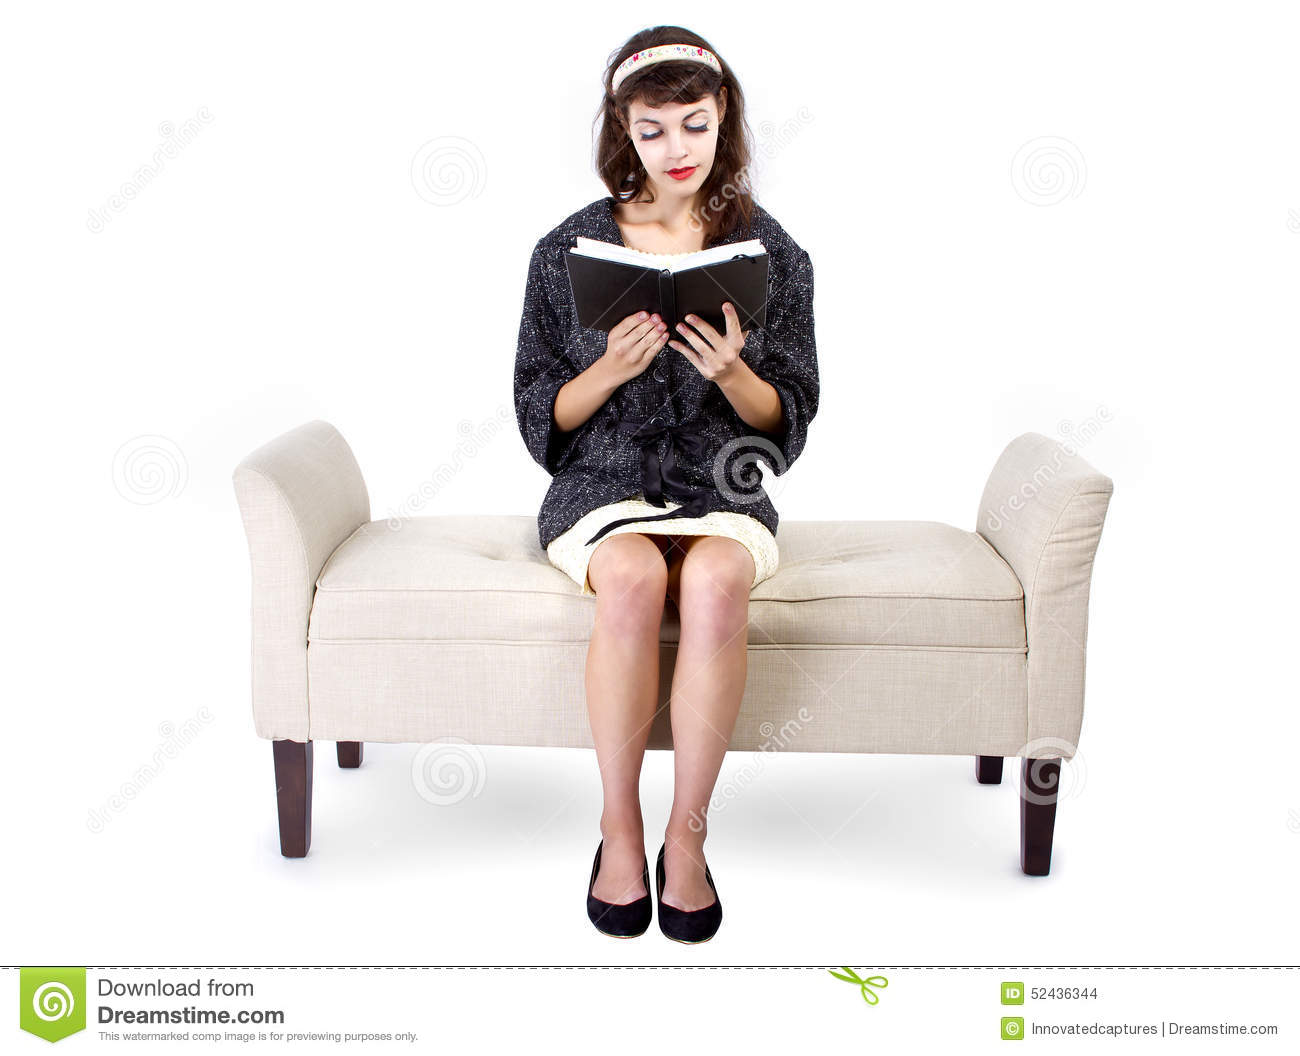 Woman Reading a Book on a Chaise Lounge